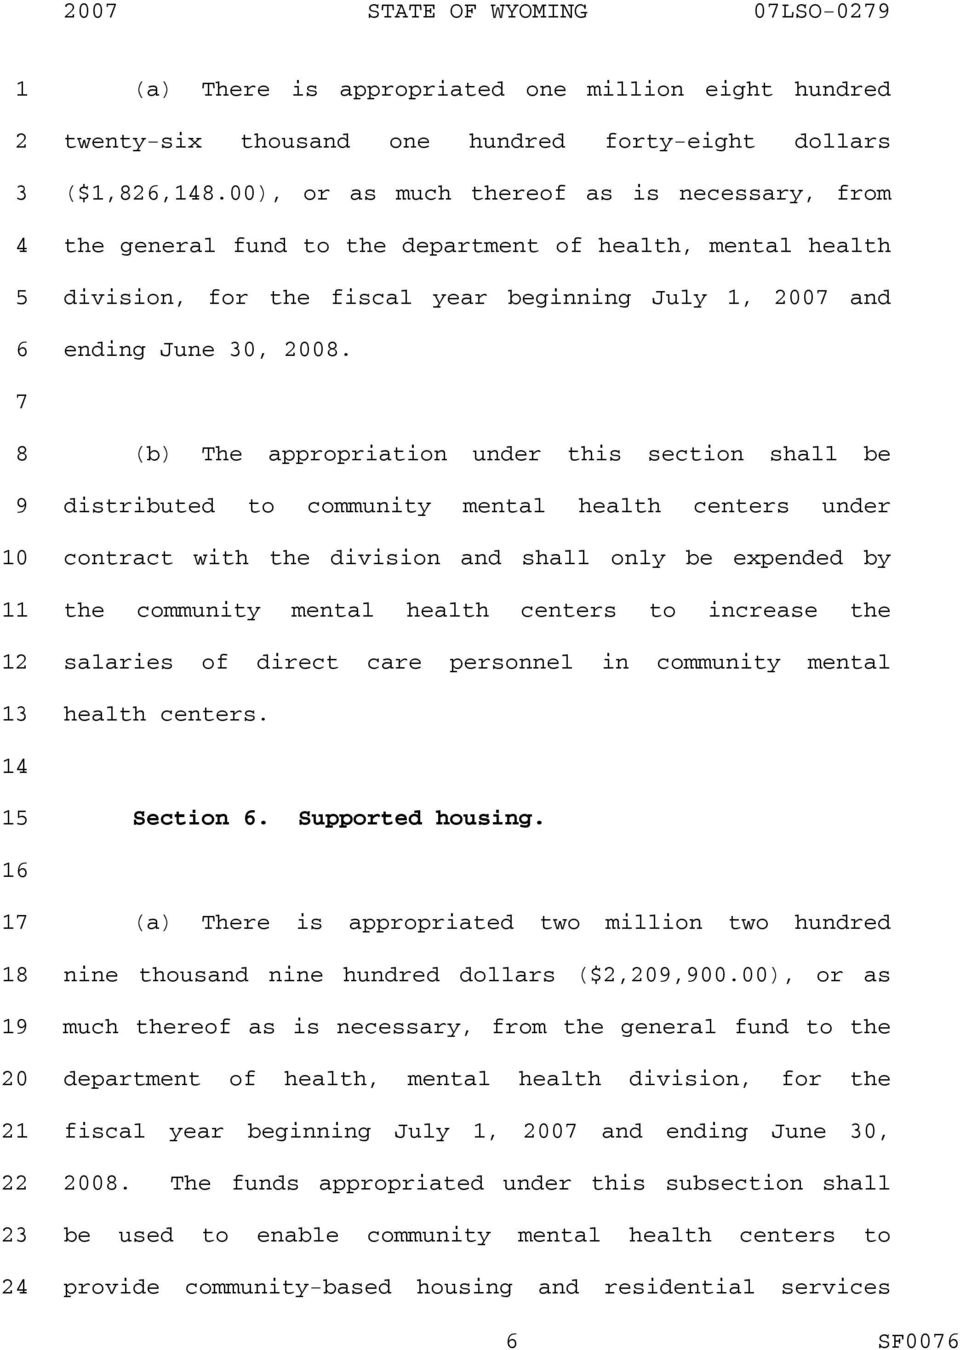 0 (b) The appropriation under this section shall be distributed to community mental health centers under contract with the division and shall only be expended by the community mental health centers